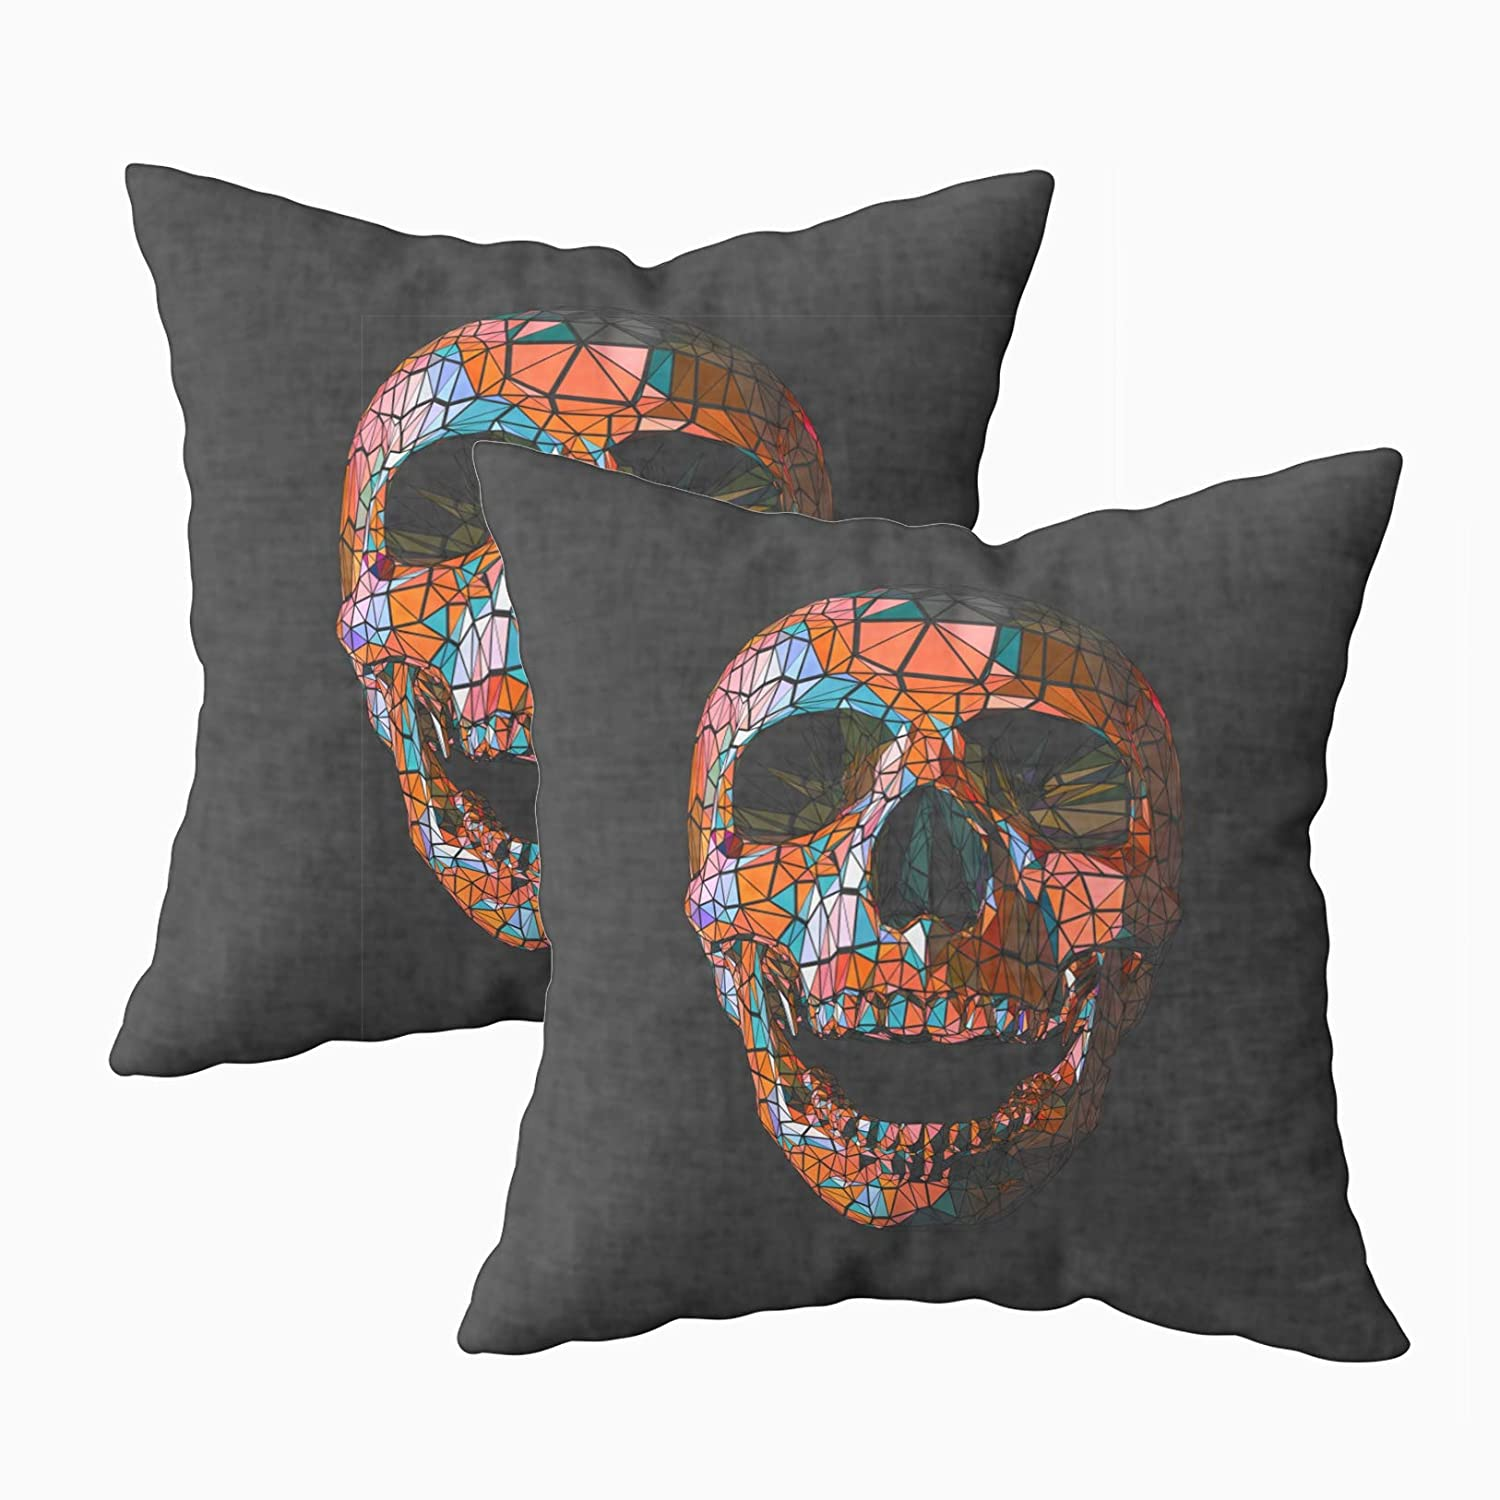 Remarkable Capsceoll Throw Pillow Covers 2Pcs Stylized Low Orange In Tribe Style Dark Background Skull 18X18 Pillow Covers Home Decoration Pillow Cases Zippered Spiritservingveterans Wood Chair Design Ideas Spiritservingveteransorg